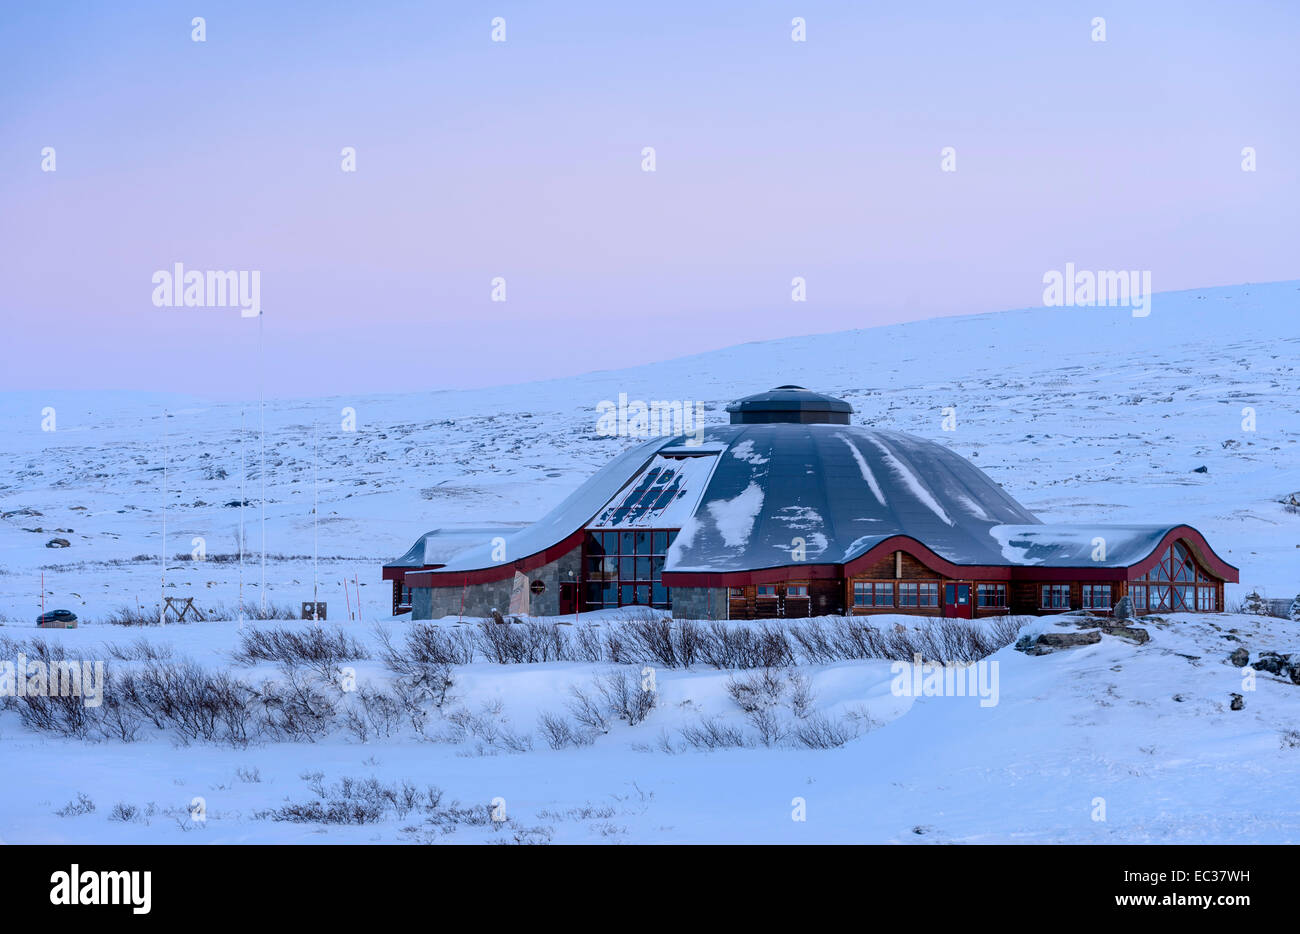 Closed visitor center at the Arctic Circle in winter, dusk, Saltfjellet, Norway - Stock Image